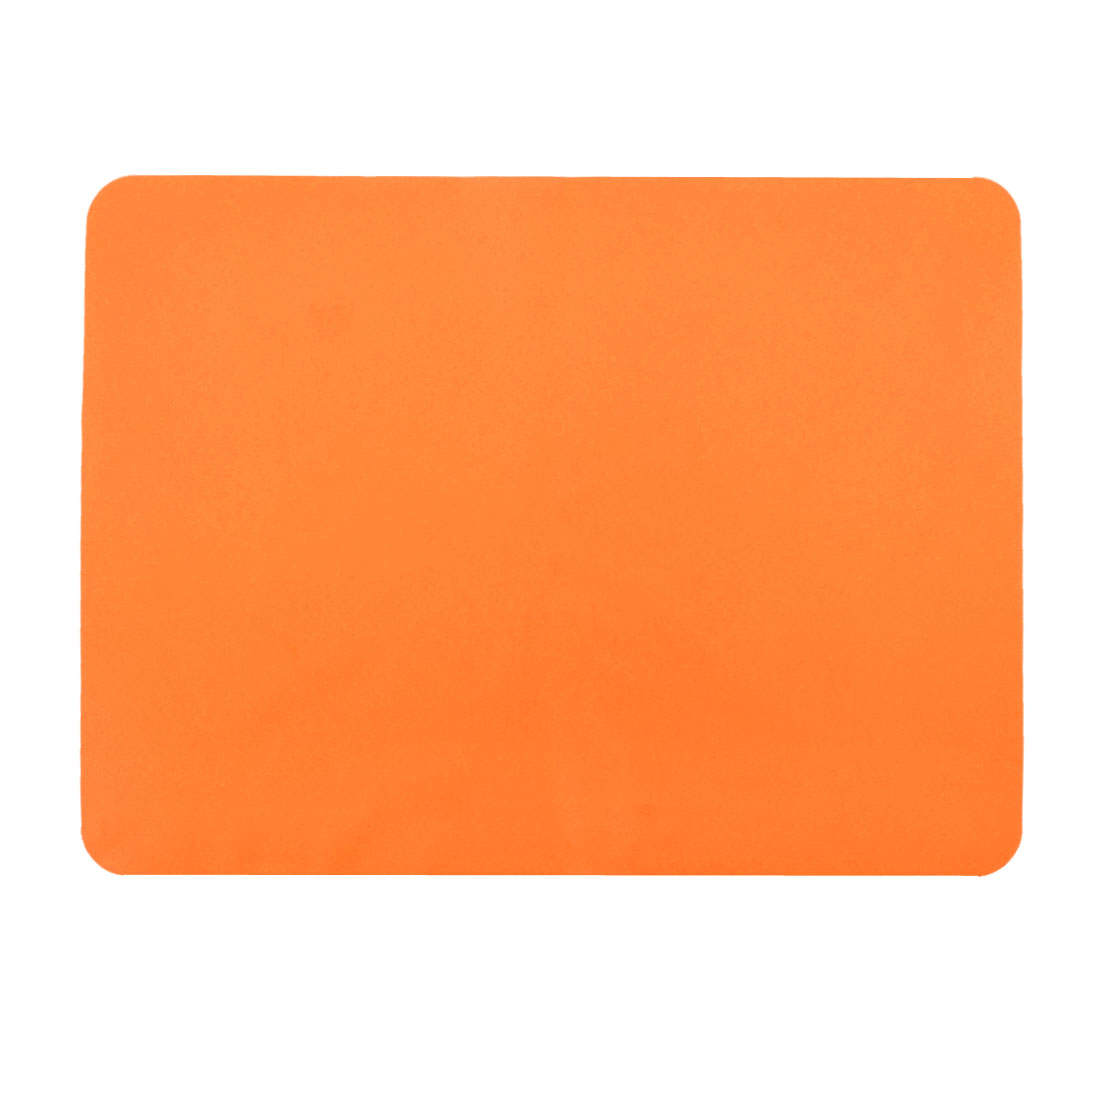 Western Restaurant Silicone Table Heat Resistant Mat Cushion Placemat Orange